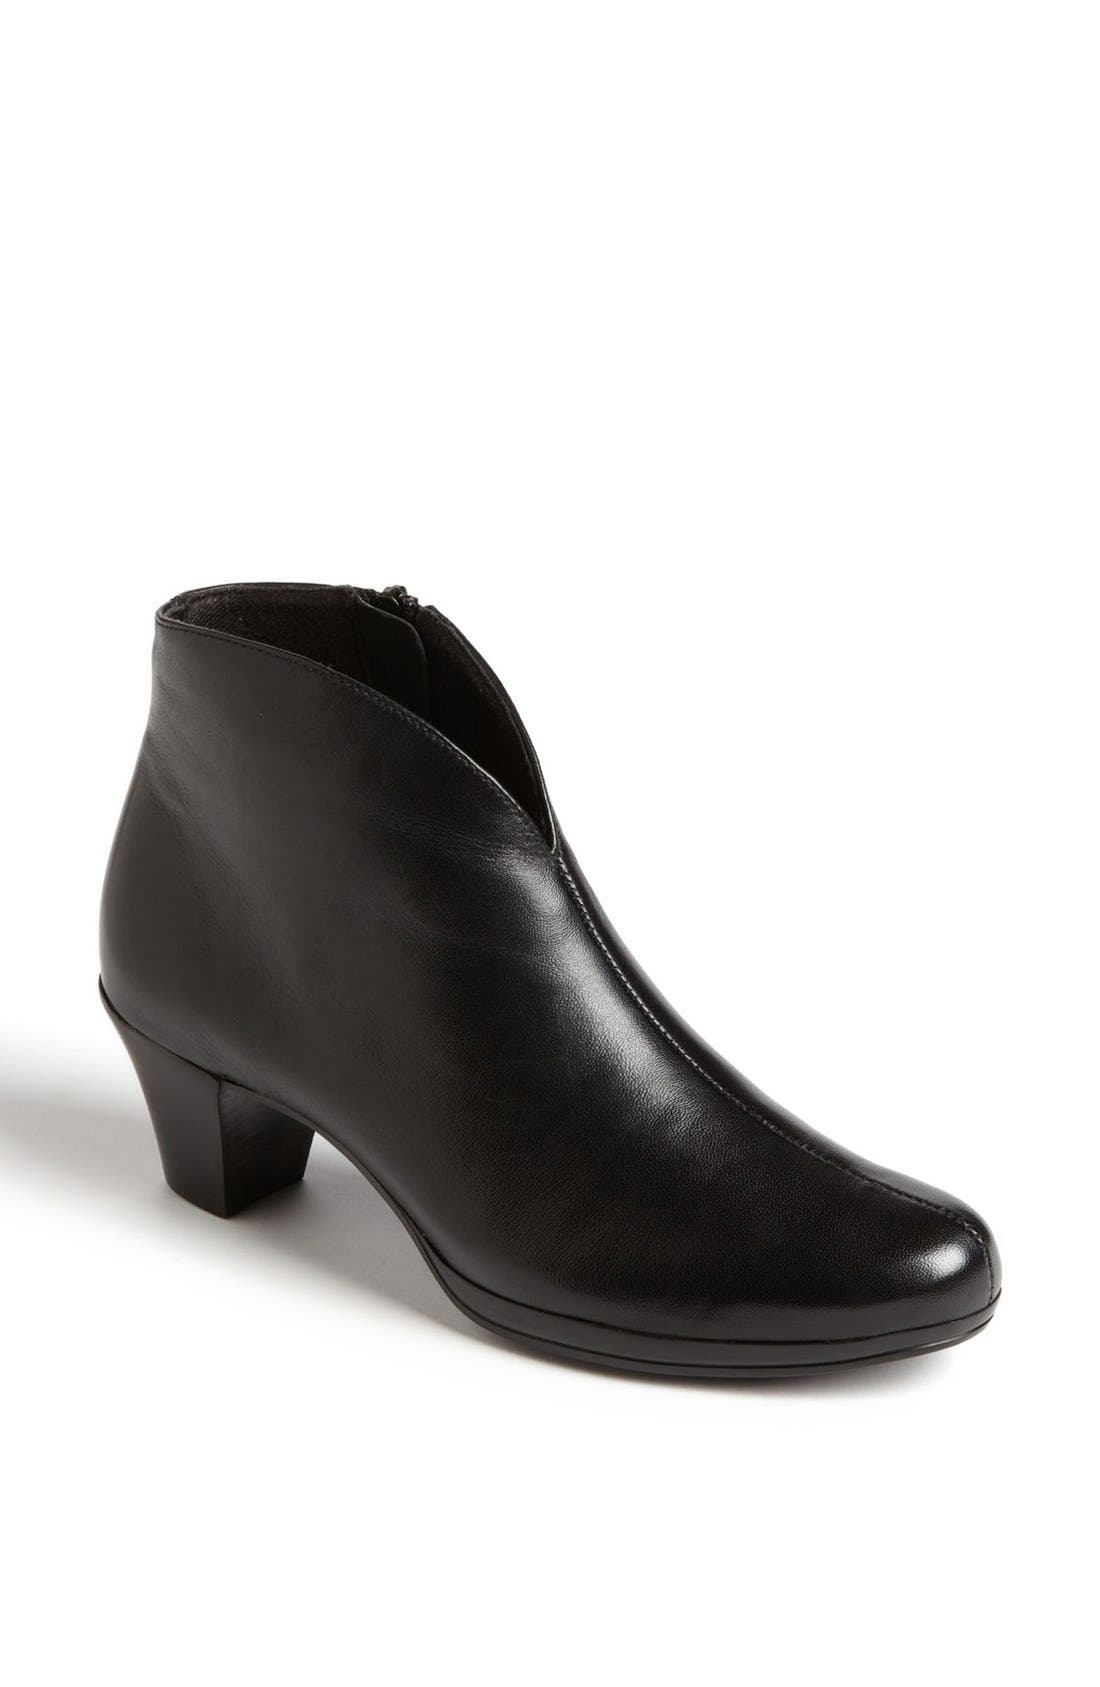 Main Image - Munro 'Robyn' Boot (Women) (Online Only)